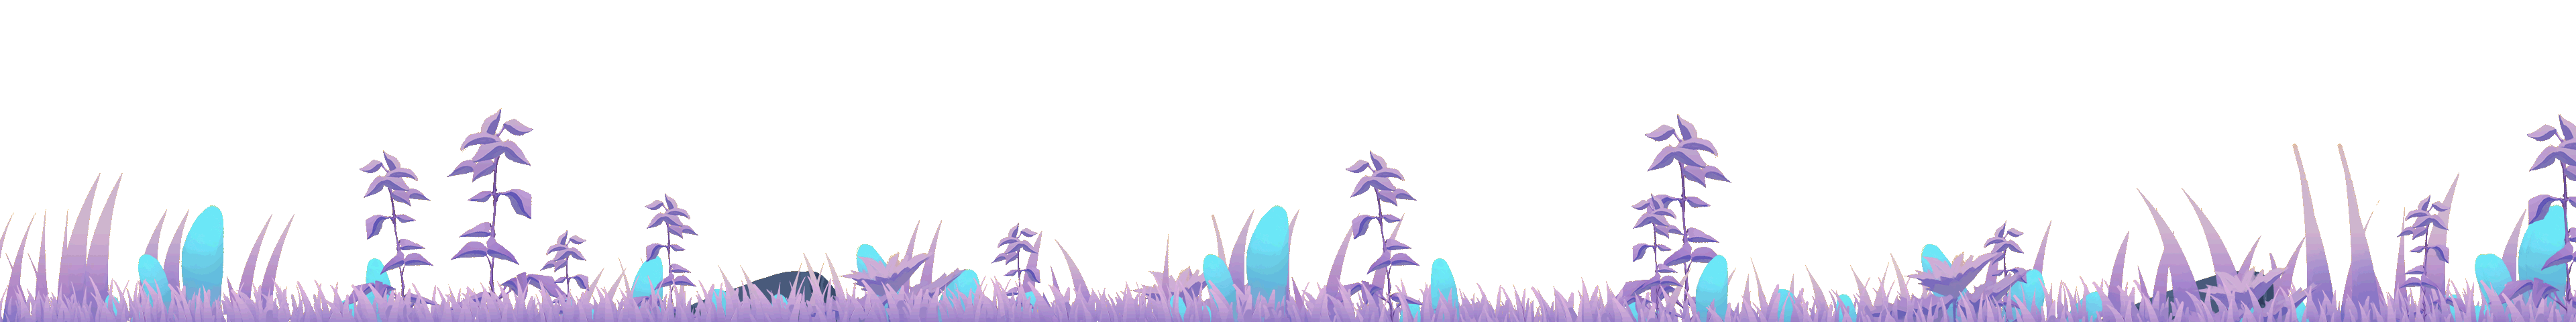 purplegrass